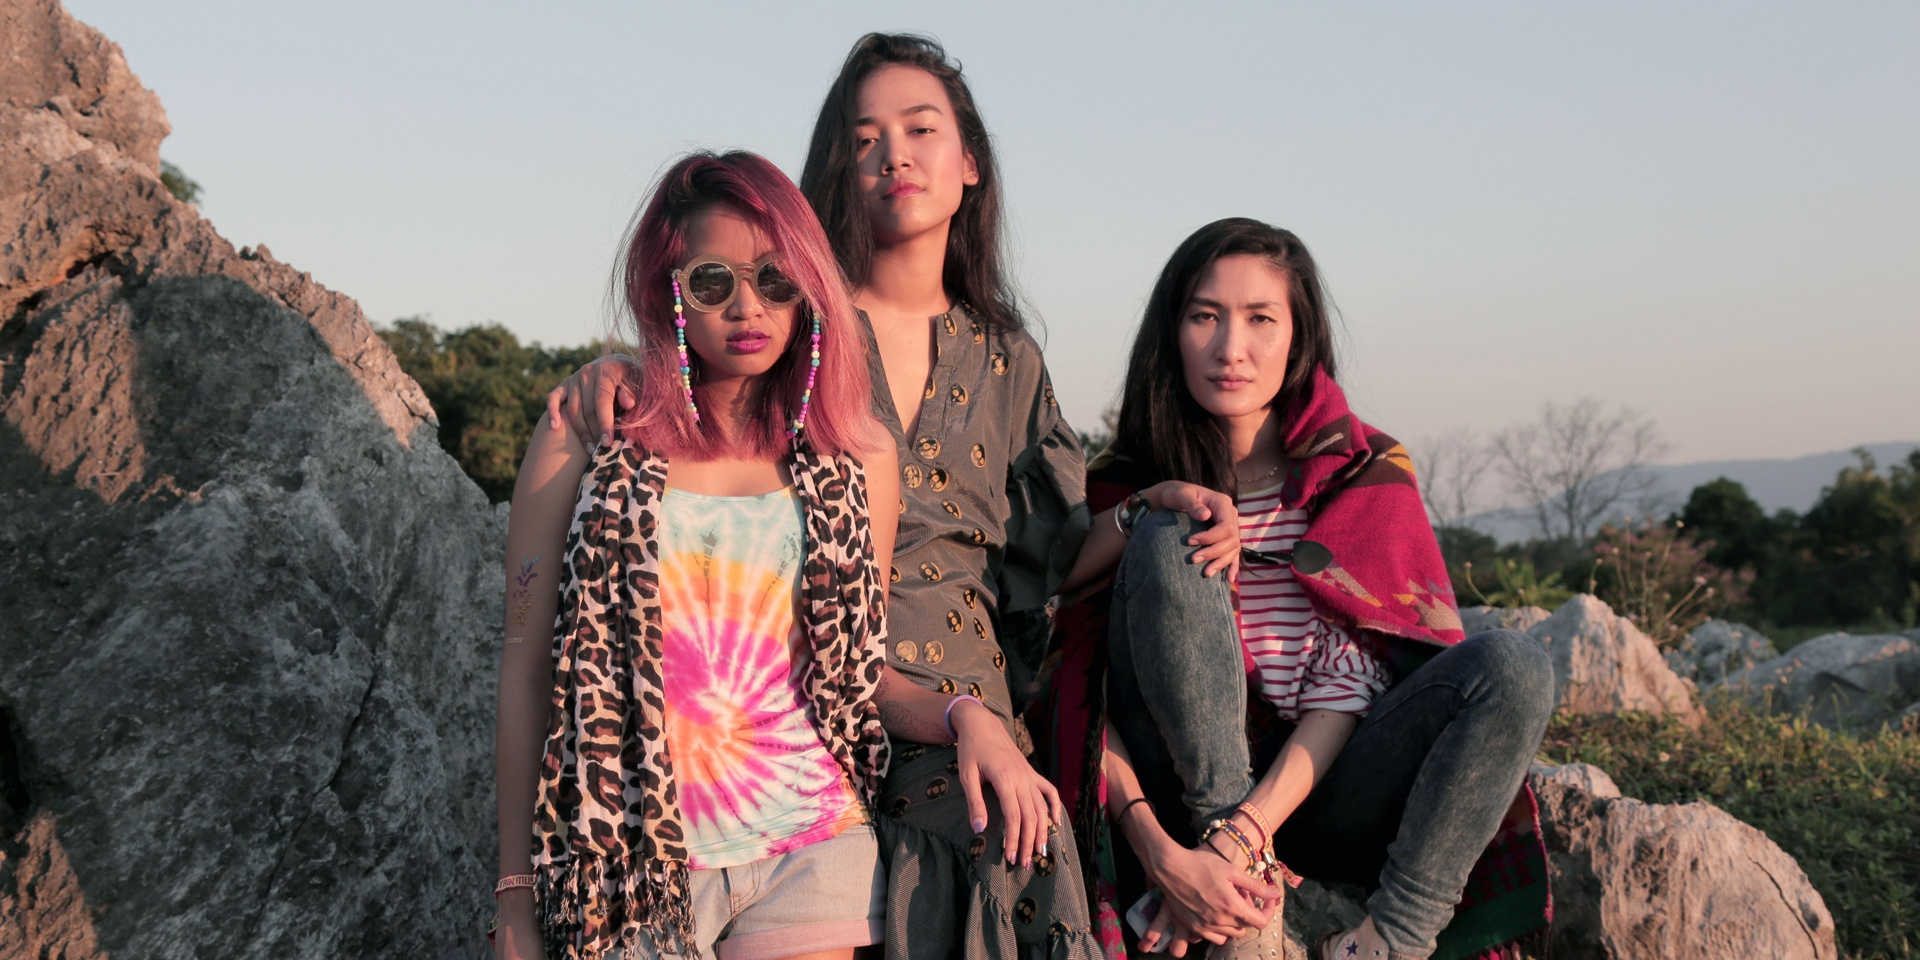 Thai indie rock band Yellow Fang to perform free show